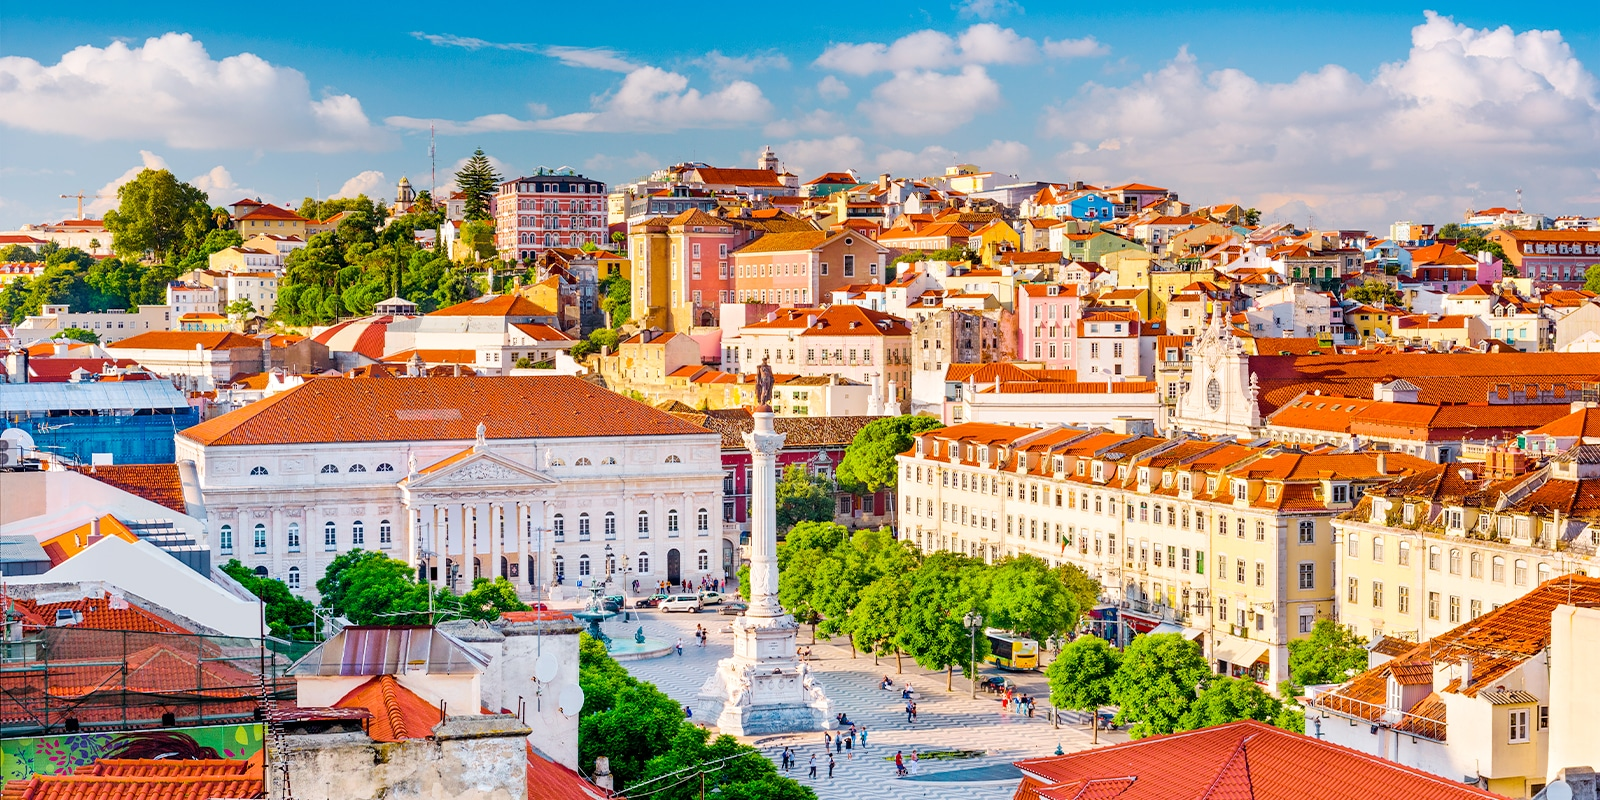 One of the interesting facts about Portugal is that the country is investing heavily in renewable energy.